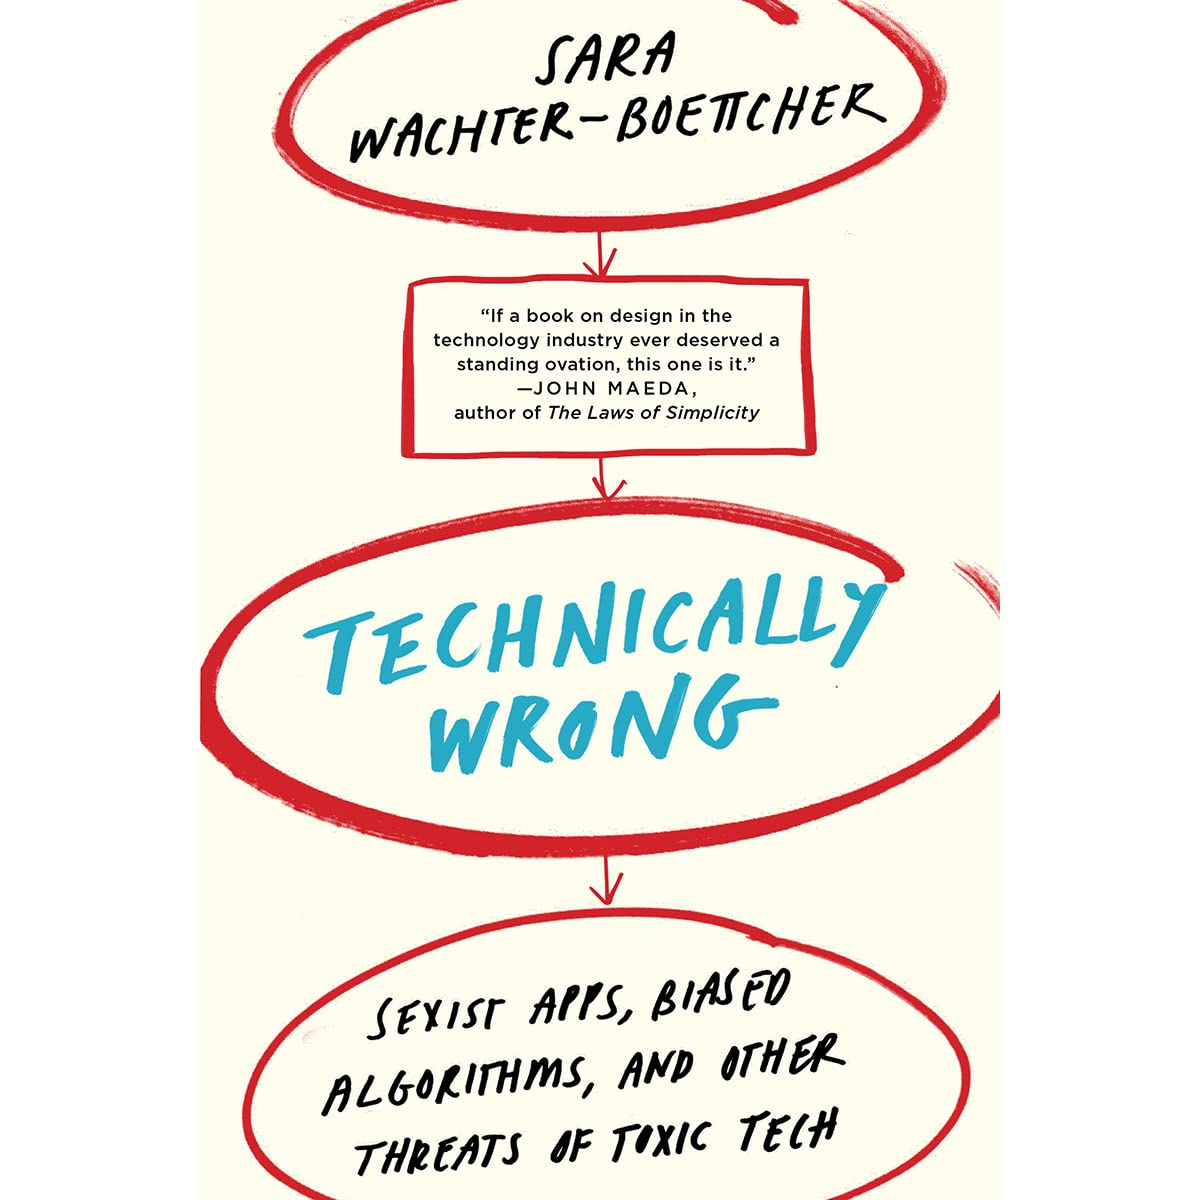 technically wrong - by Sara wachter boeticher